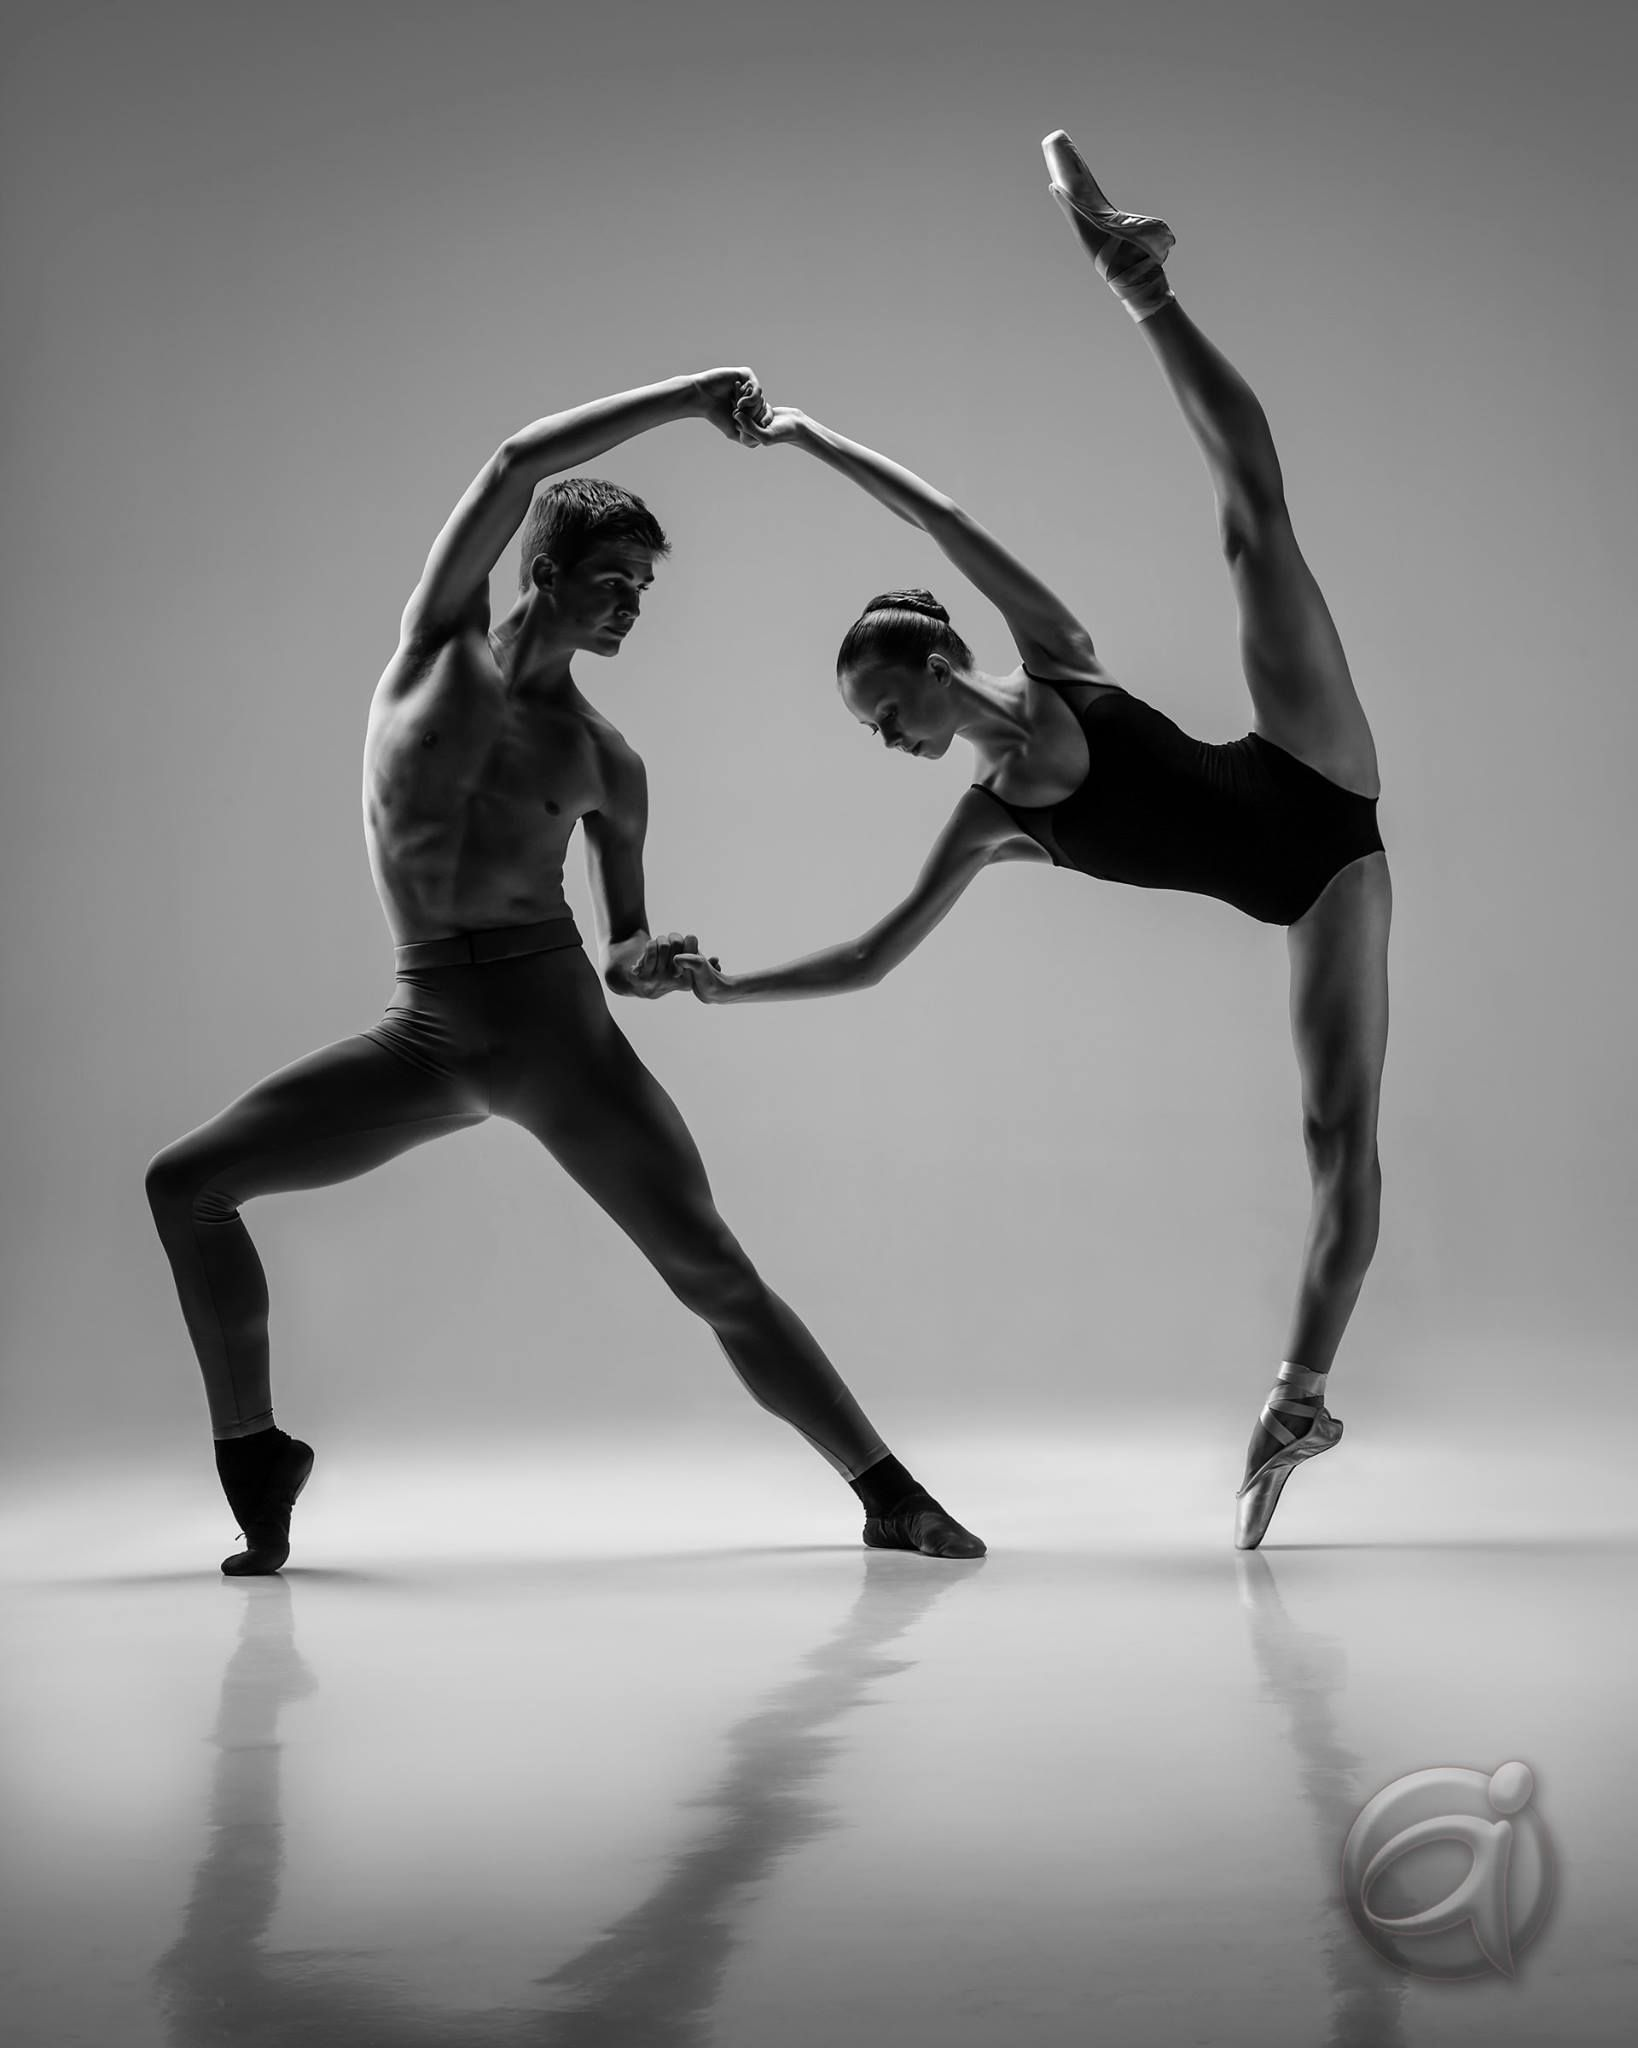 Pin by Yvette Villarreal on Ballet photography   Amazing